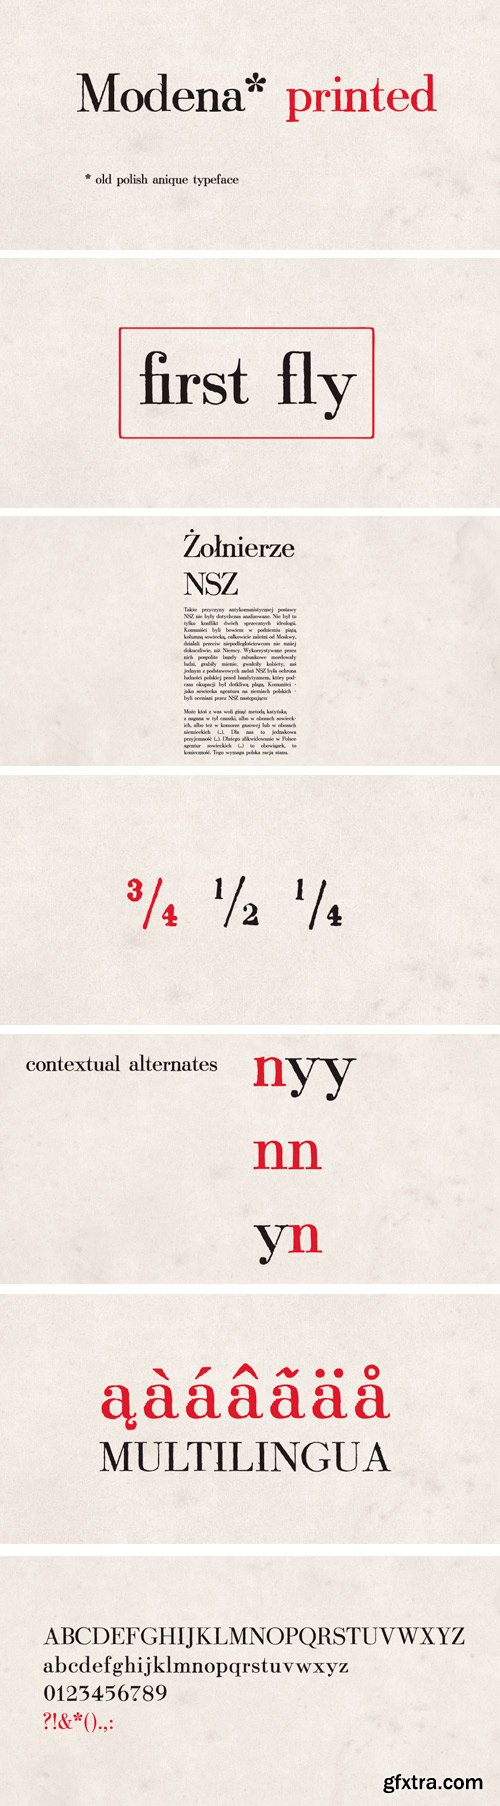 Modena Printed Font for $25